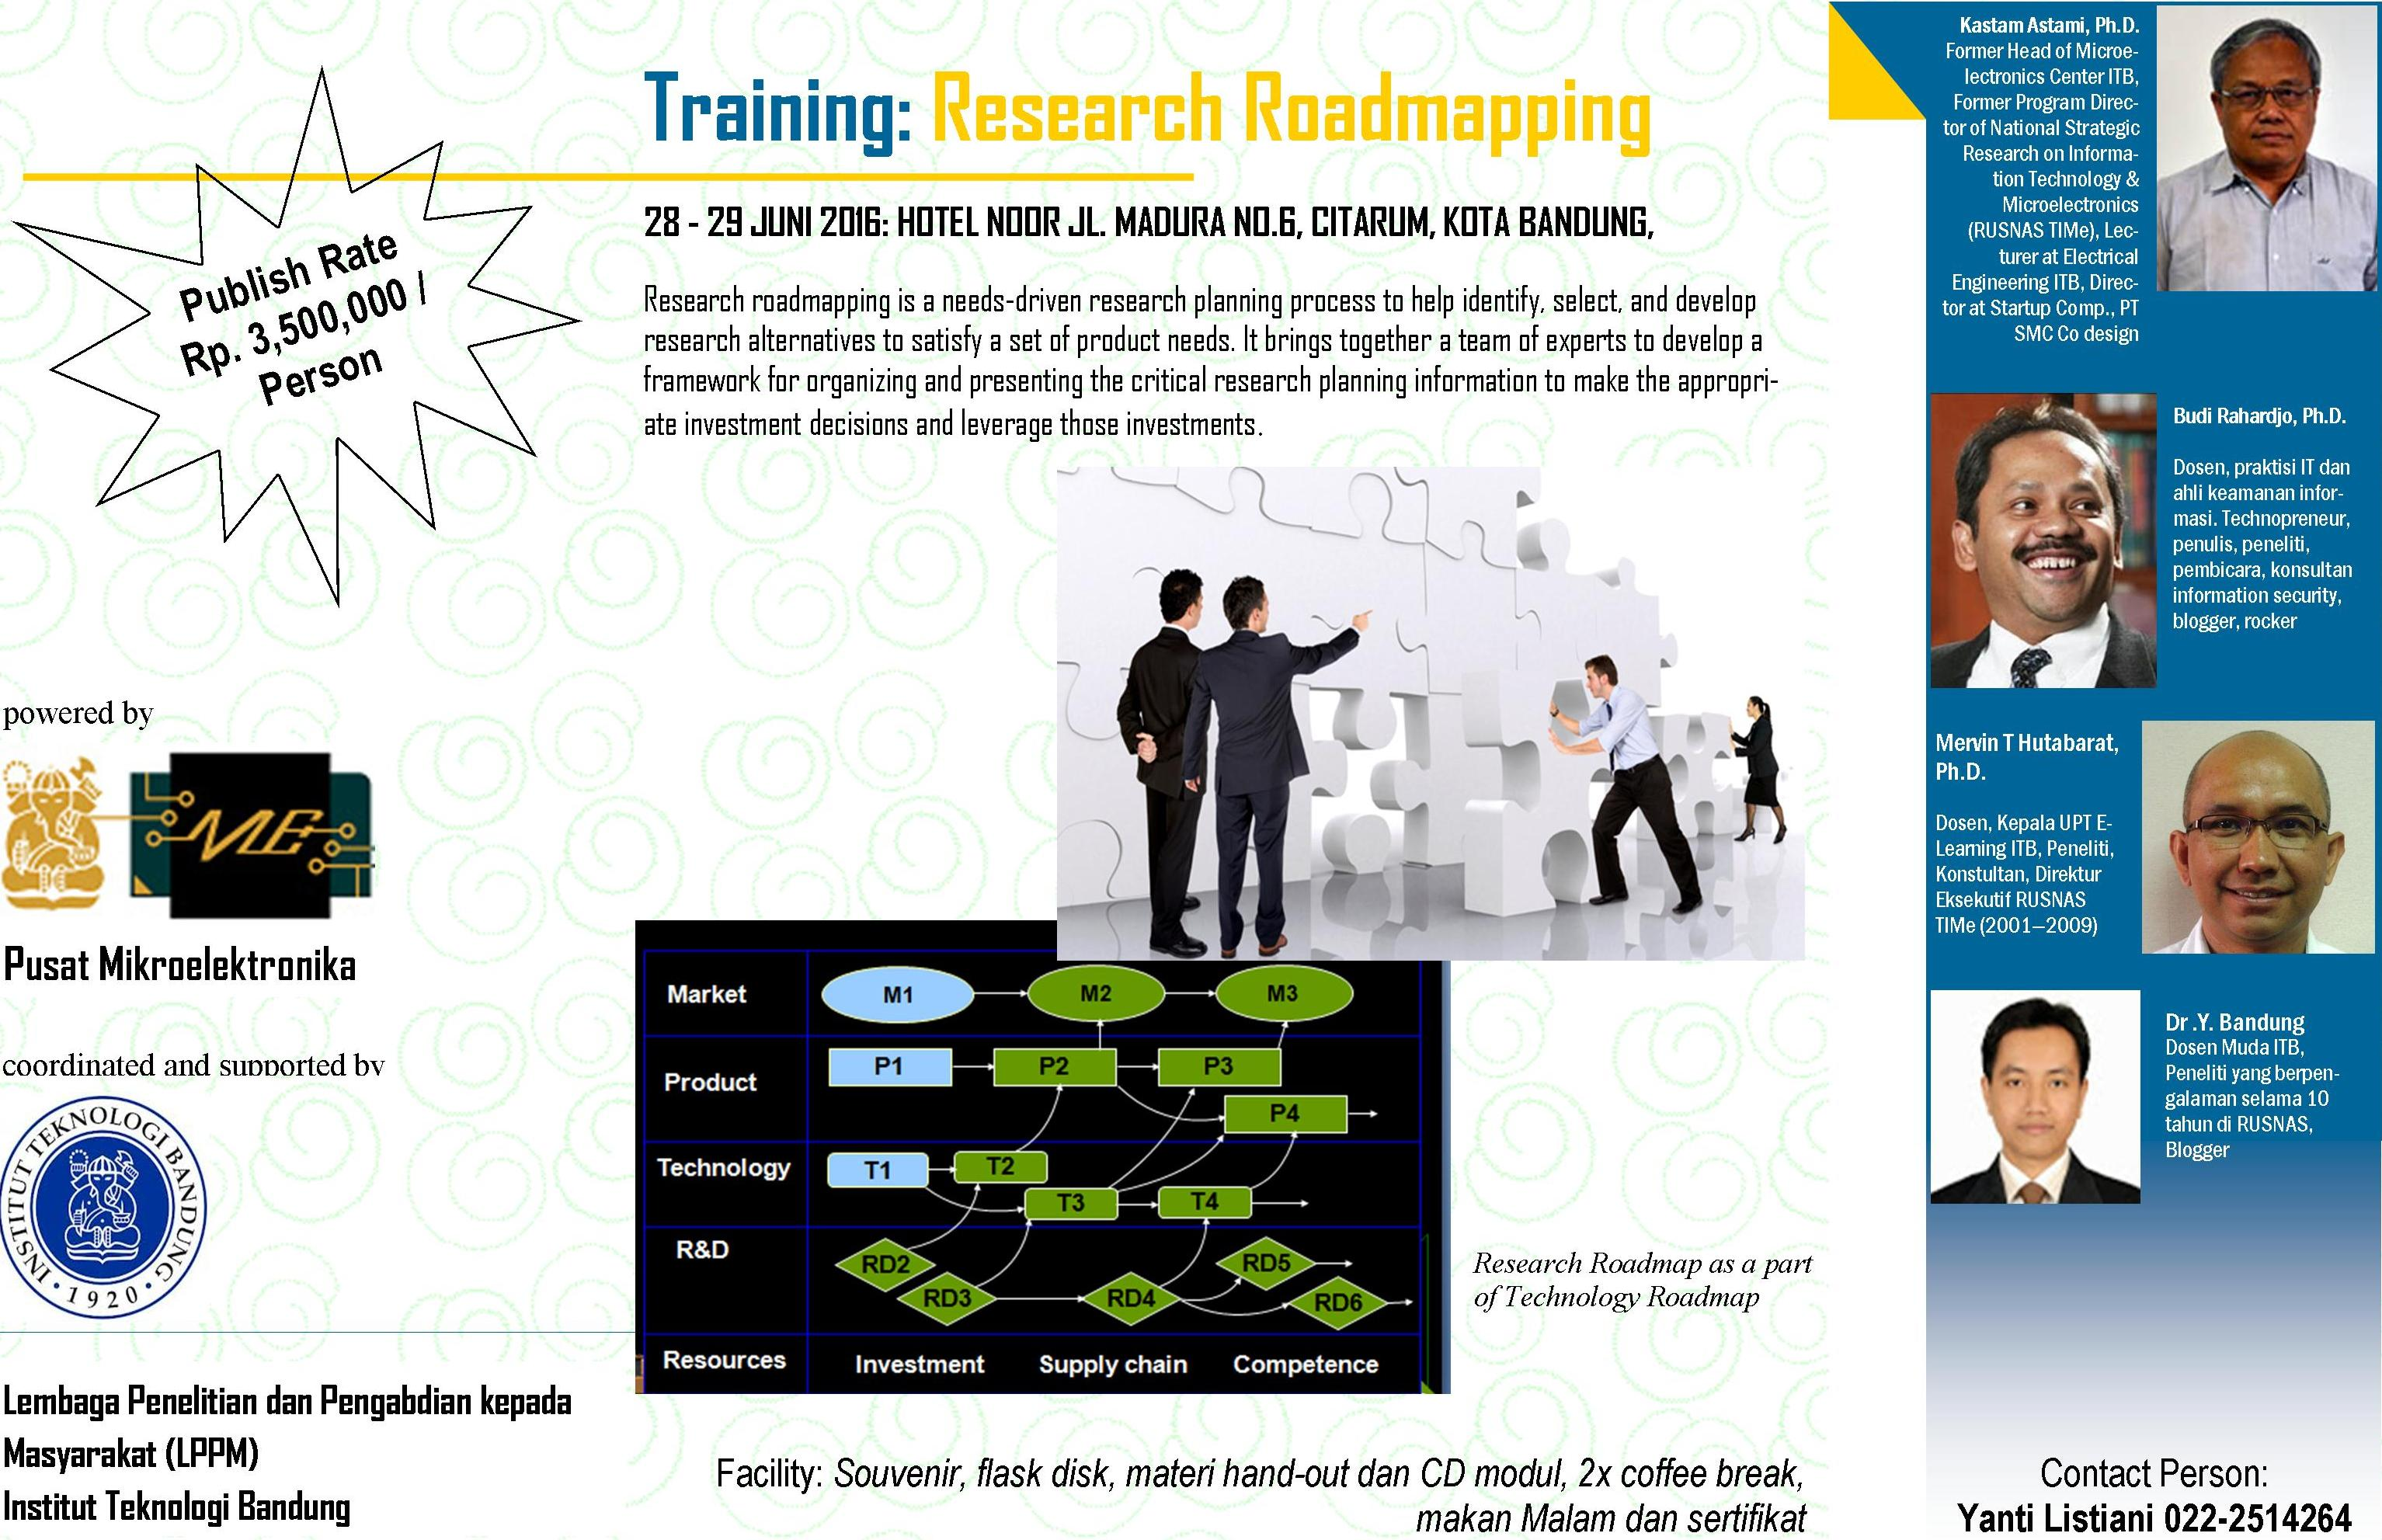 Training on Research Roadmapping